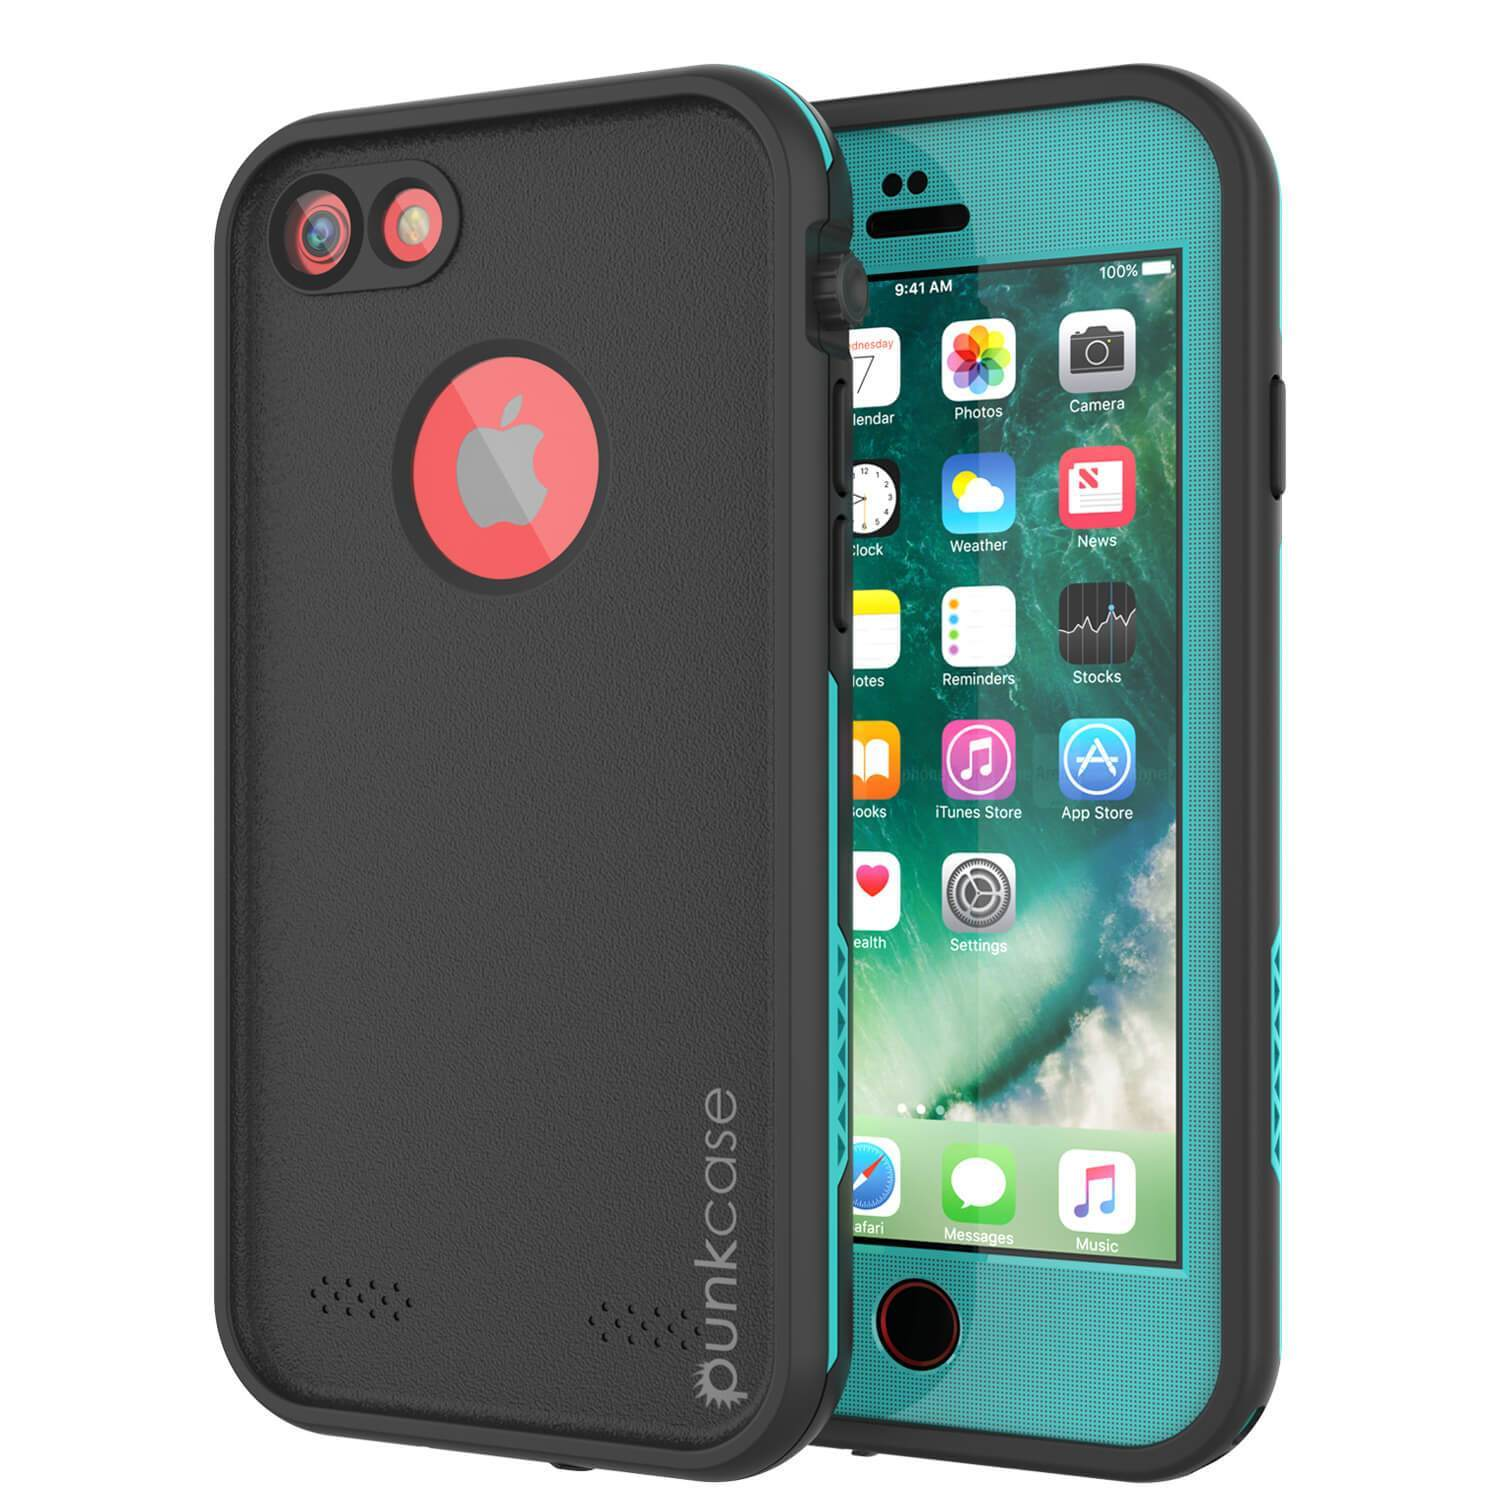 "iPhone SE (4.7"") Waterproof Case, Punkcase SpikeStar Teal Series 